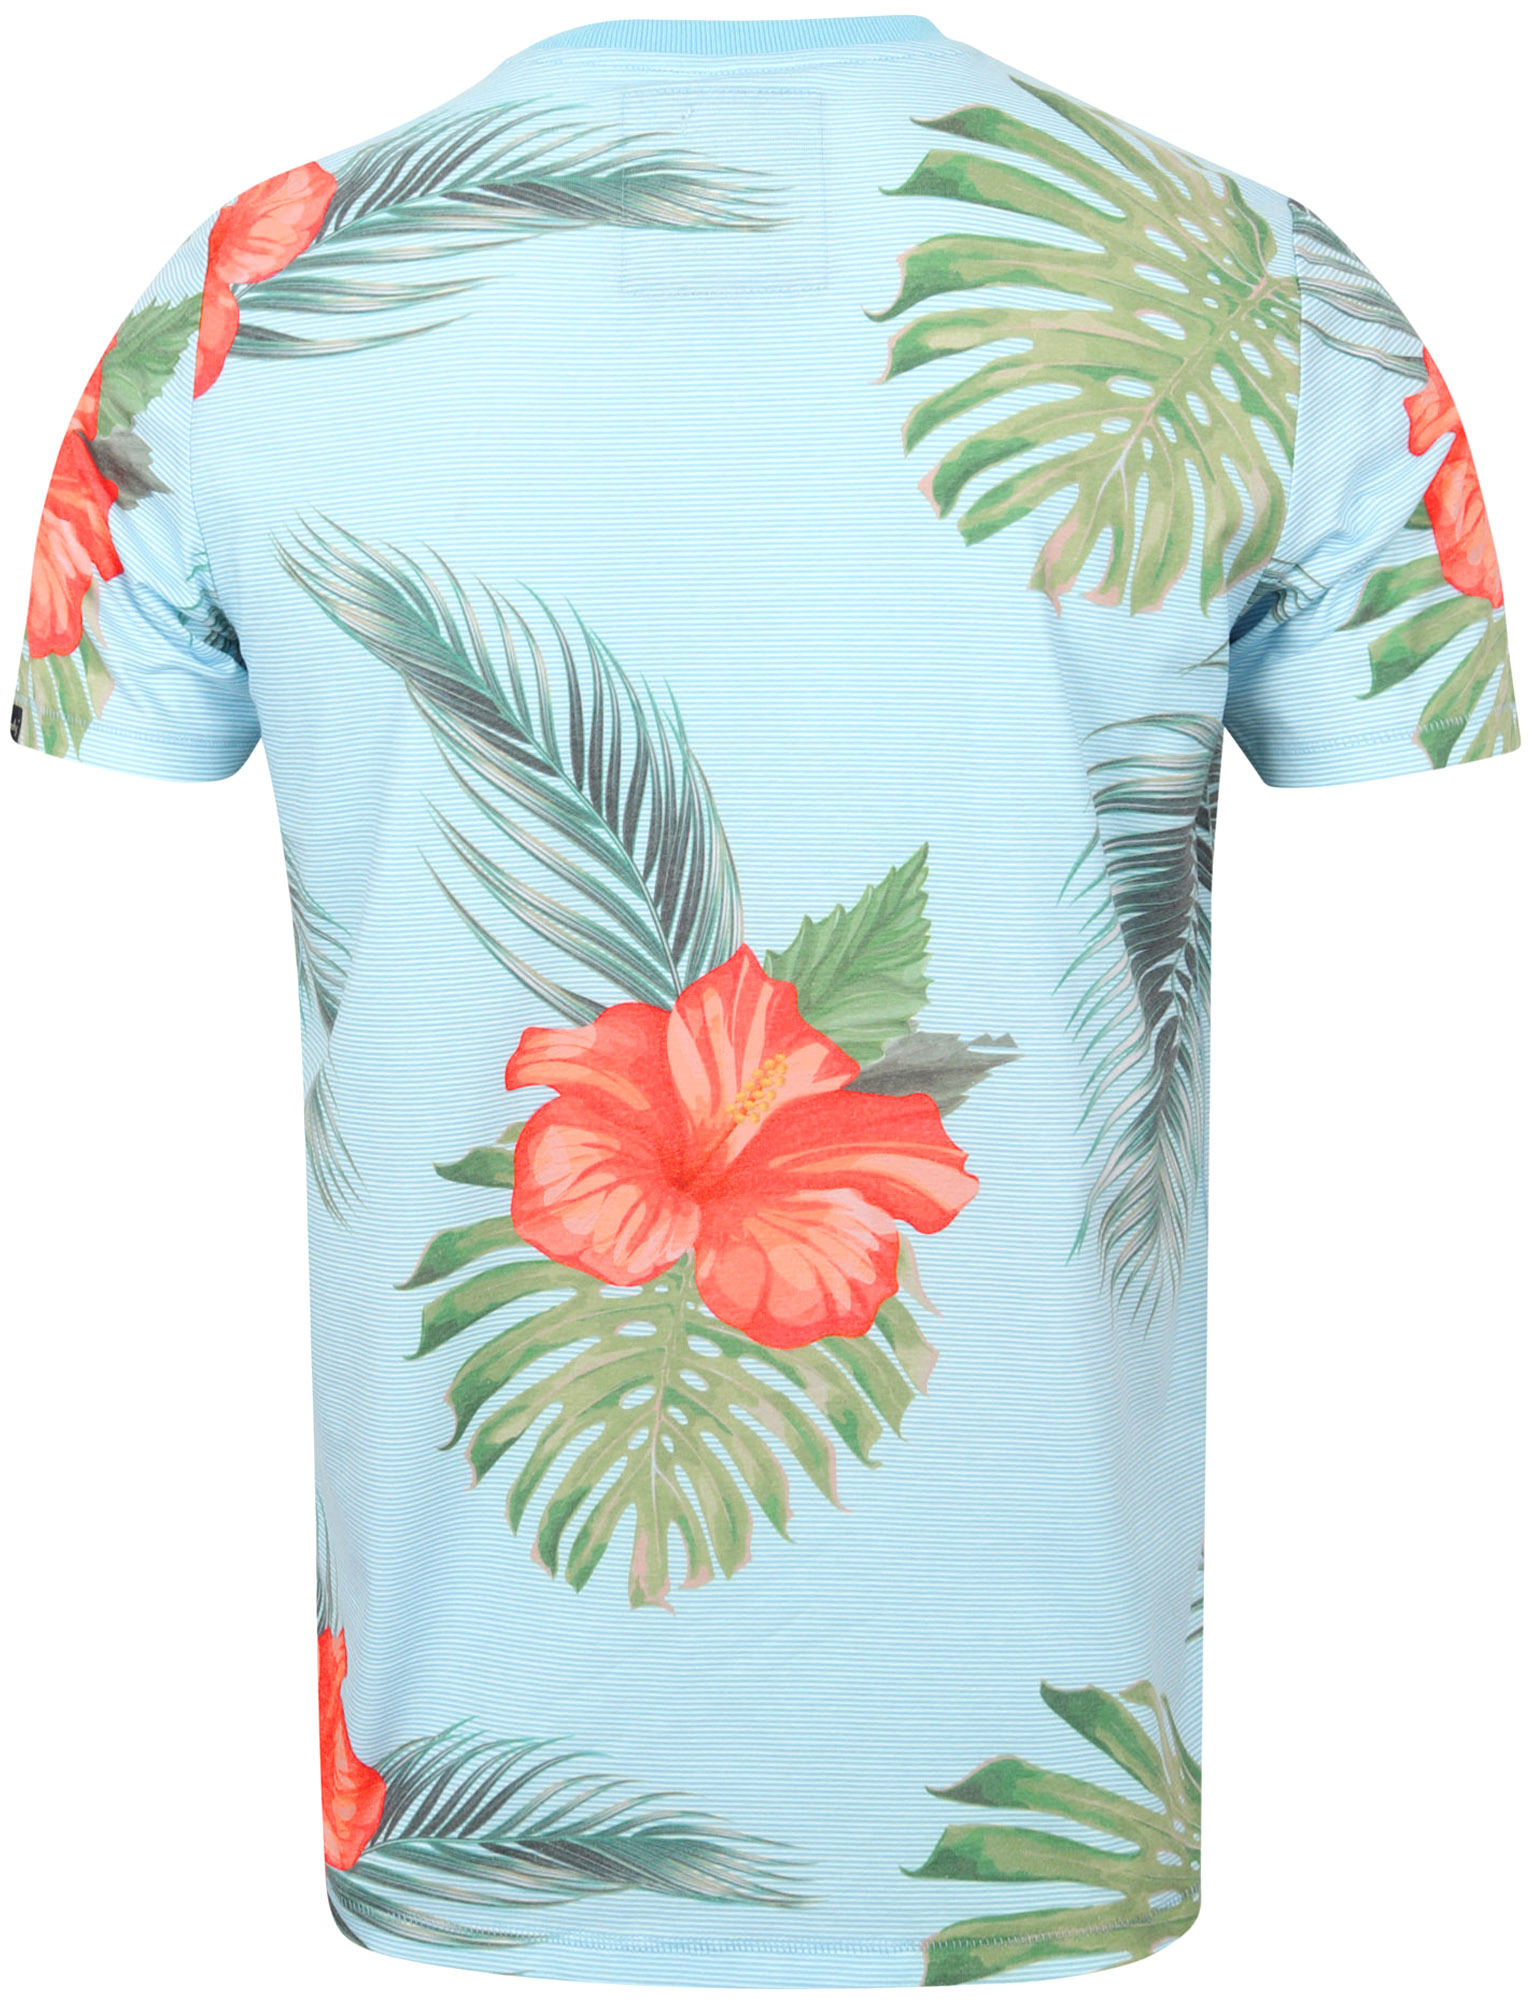 thumbnail 23 - Tokyo-Laundry-Tropical-Print-Crew-Neck-T-Shirt-Hawaiian-Floral-Summer-Holiday